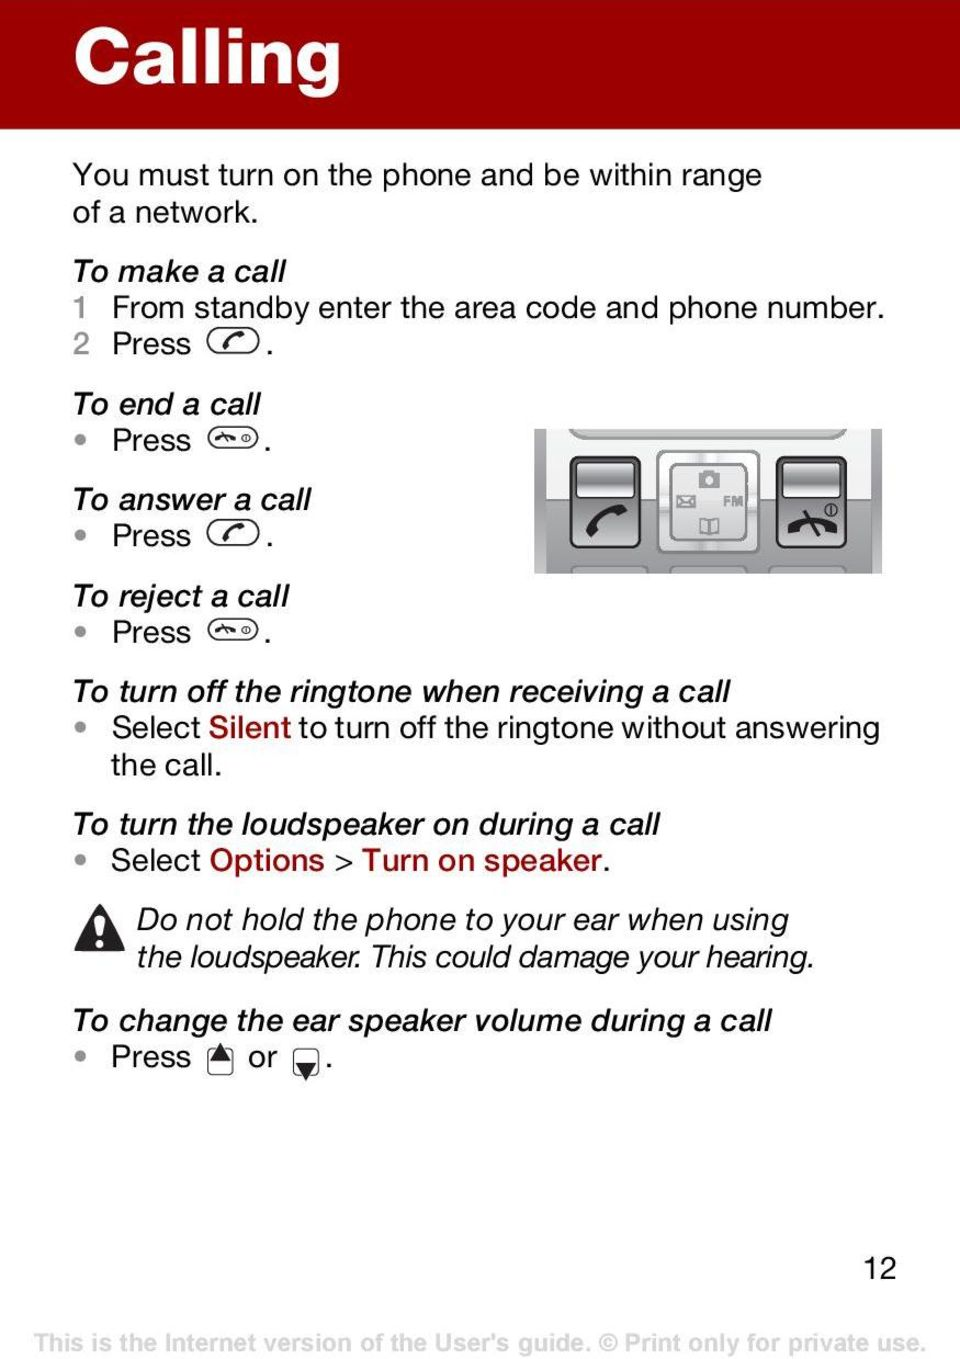 To turn off the ringtone when receiving a call Select Silent to turn off the ringtone without answering the call.